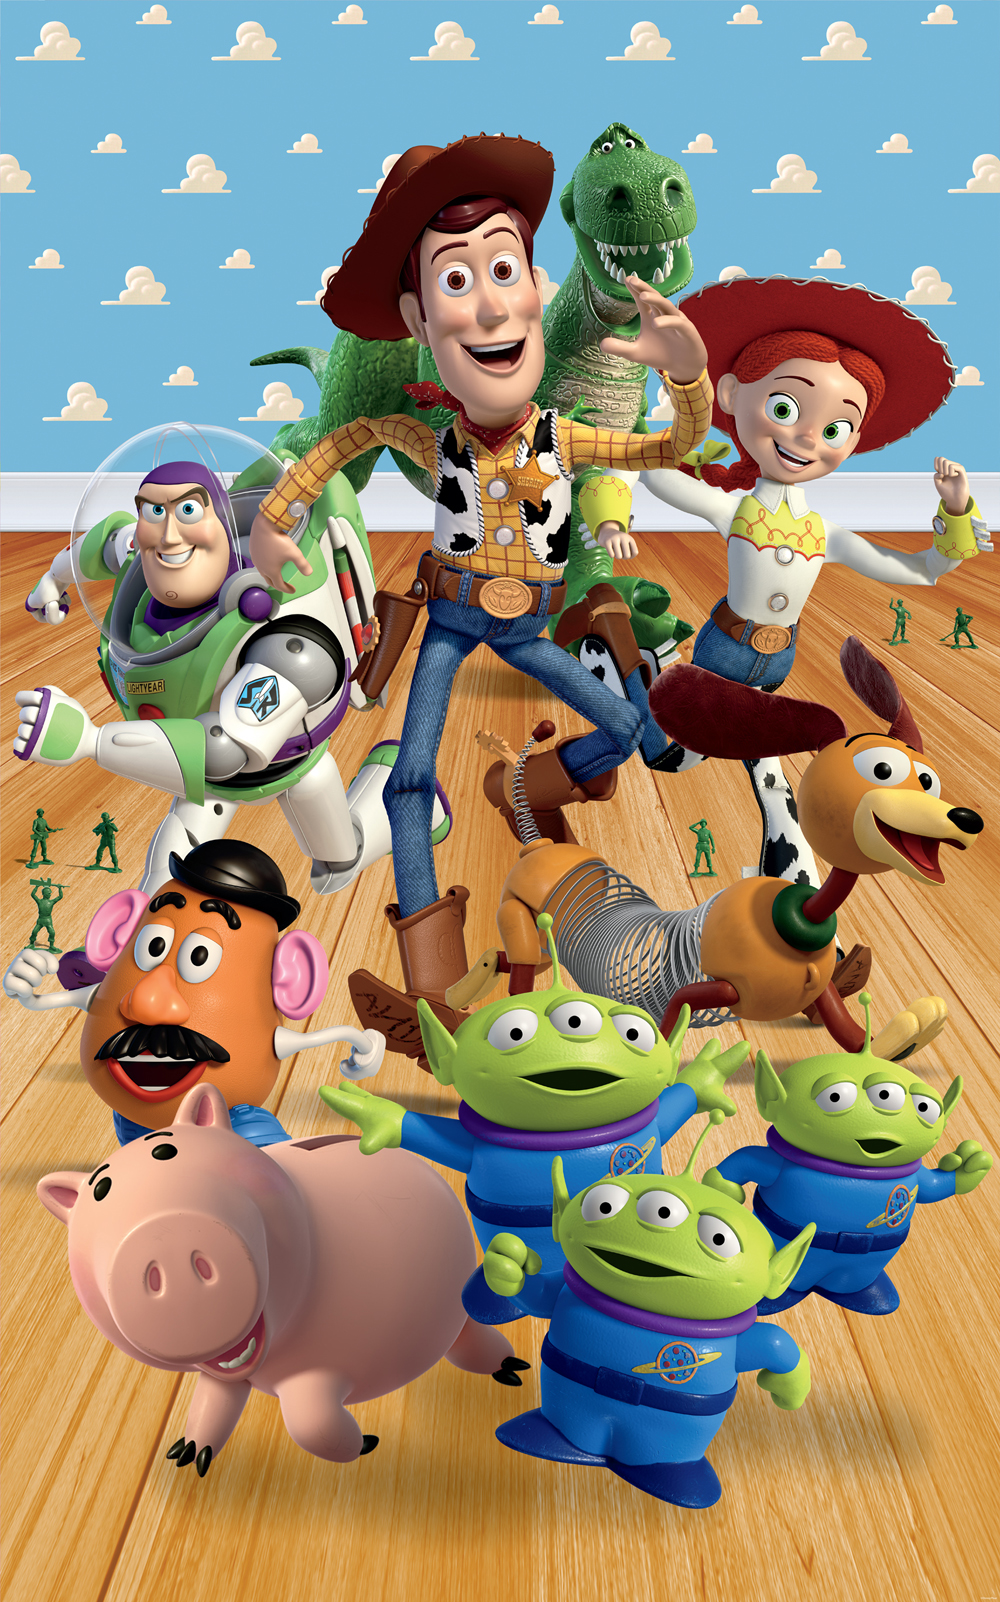 Disney toy story wallpaper poster mural walltastic for more information or for details on how to buy this product contact us amipublicfo Image collections